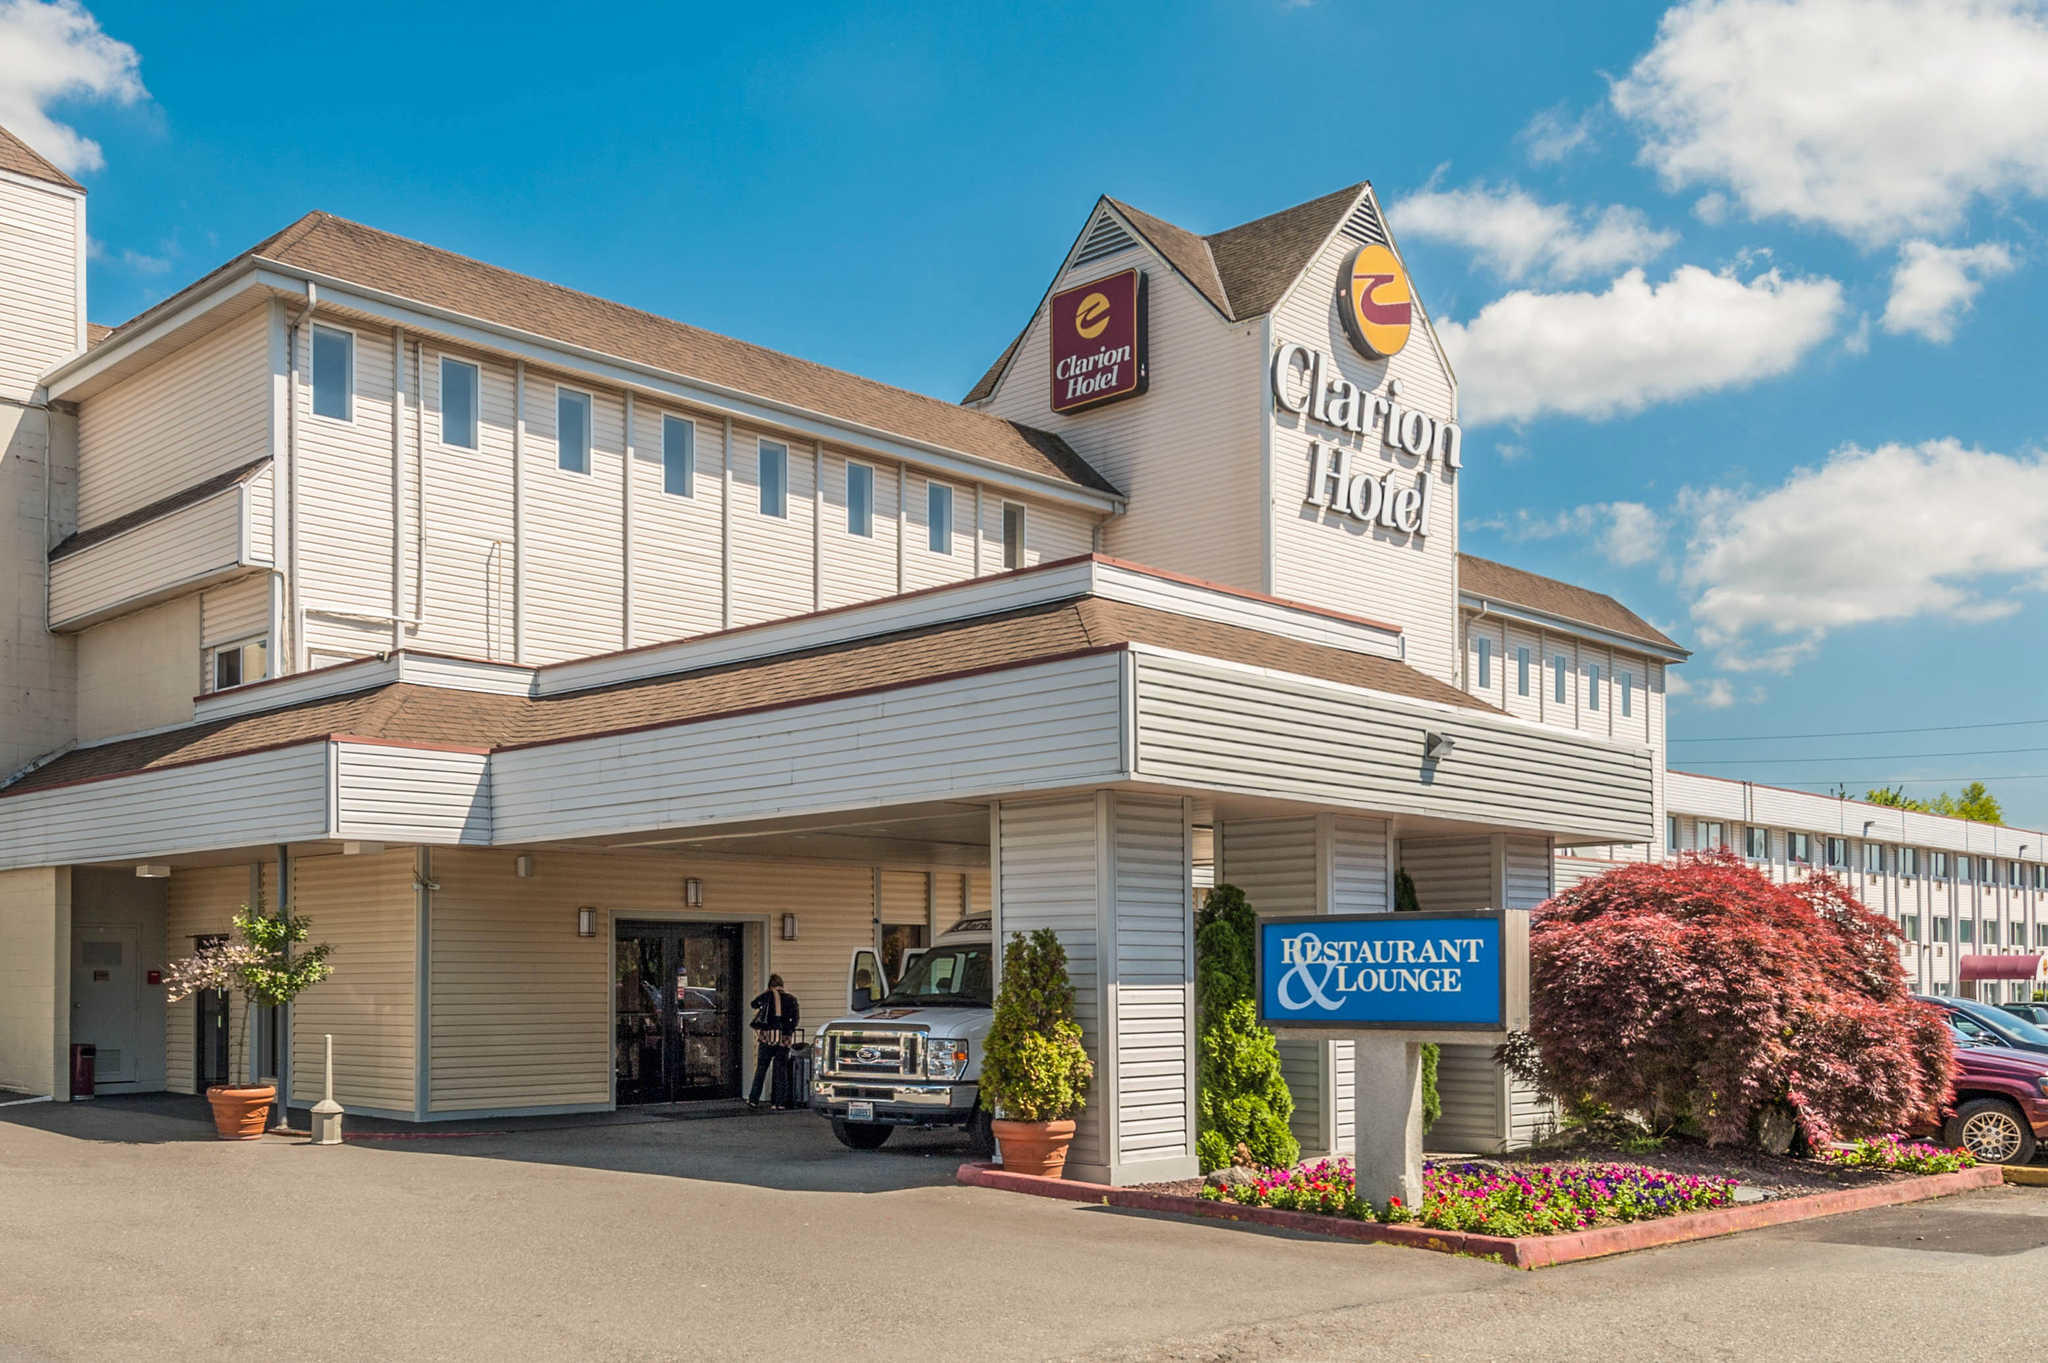 Clarion Hotel Seattle Airport image 0